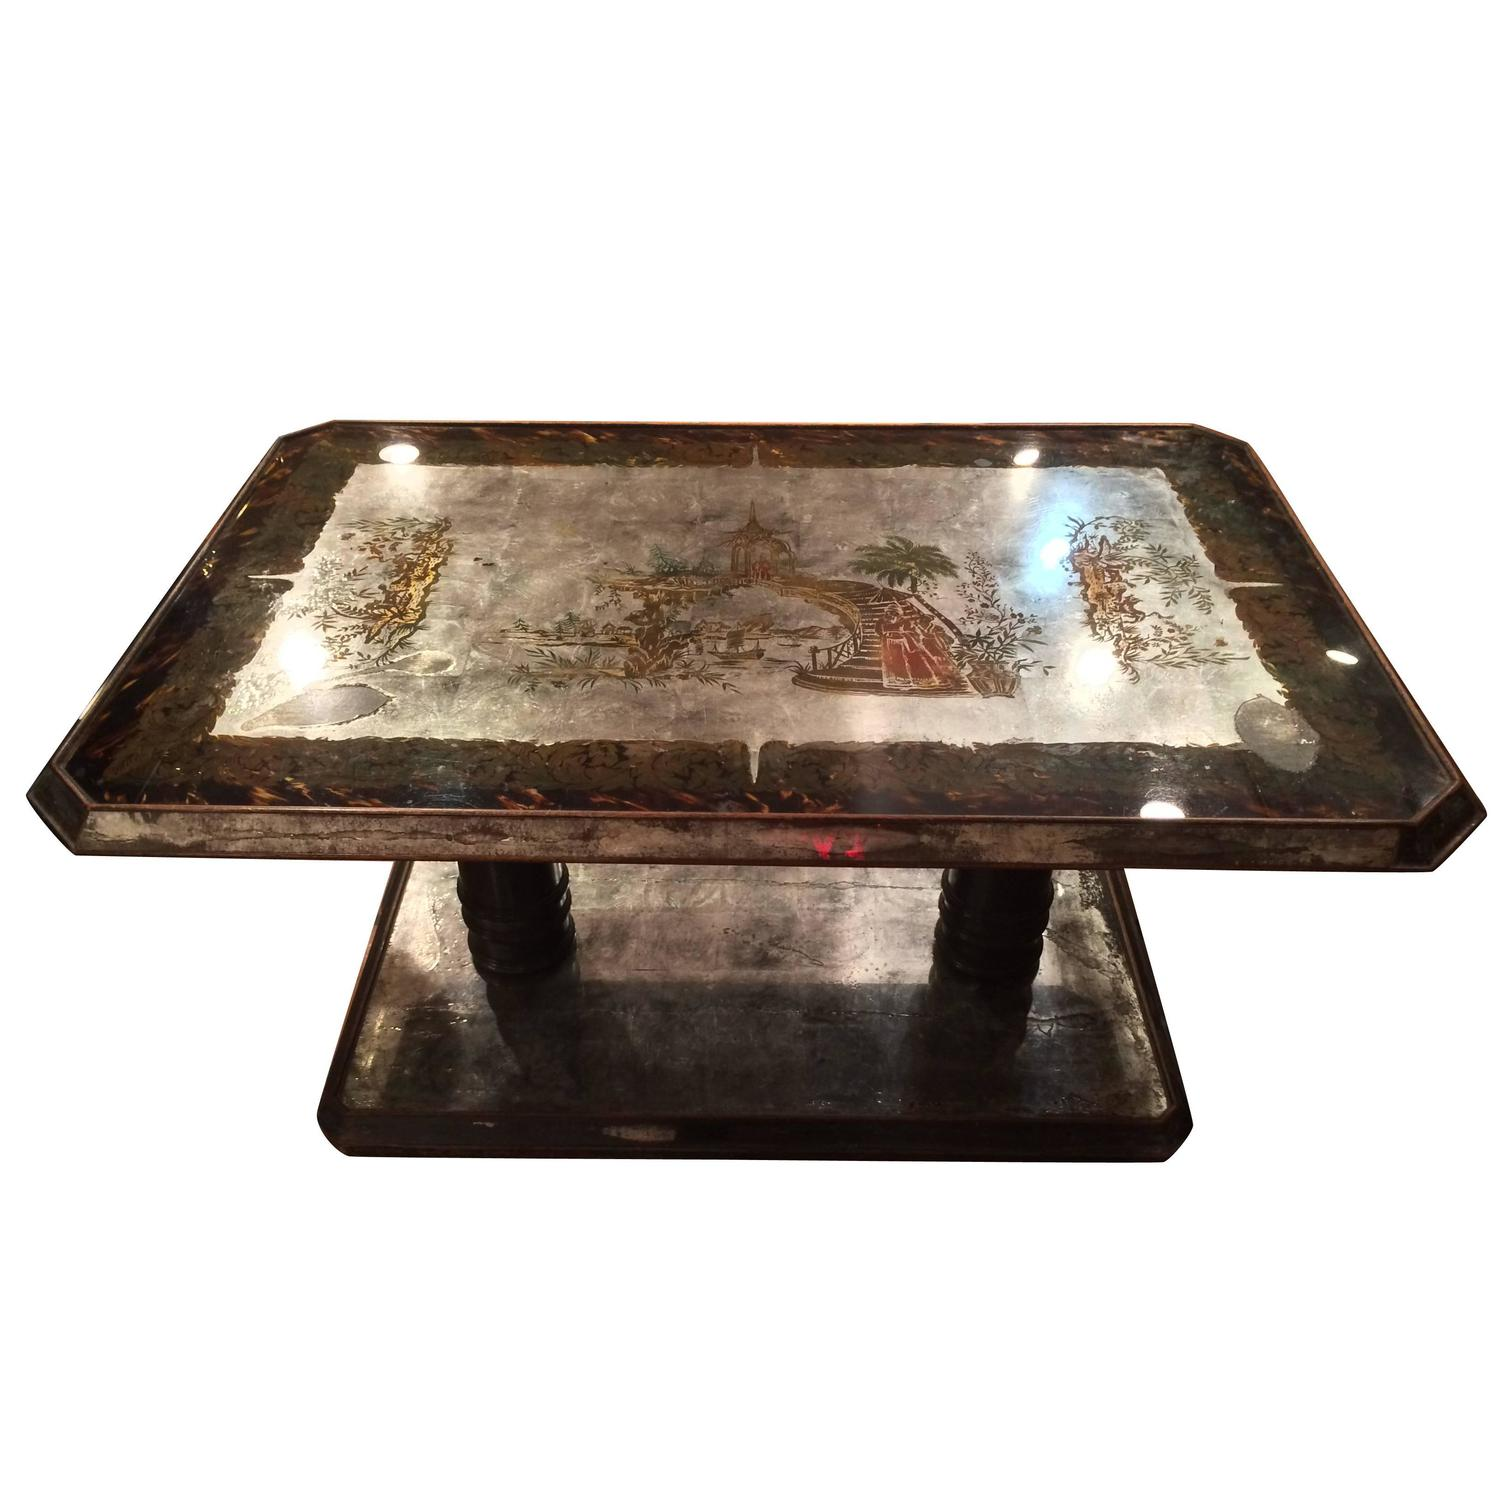 Chinoiserie Silver Leafed Reverse Painted Coffee Table At 1stdibs